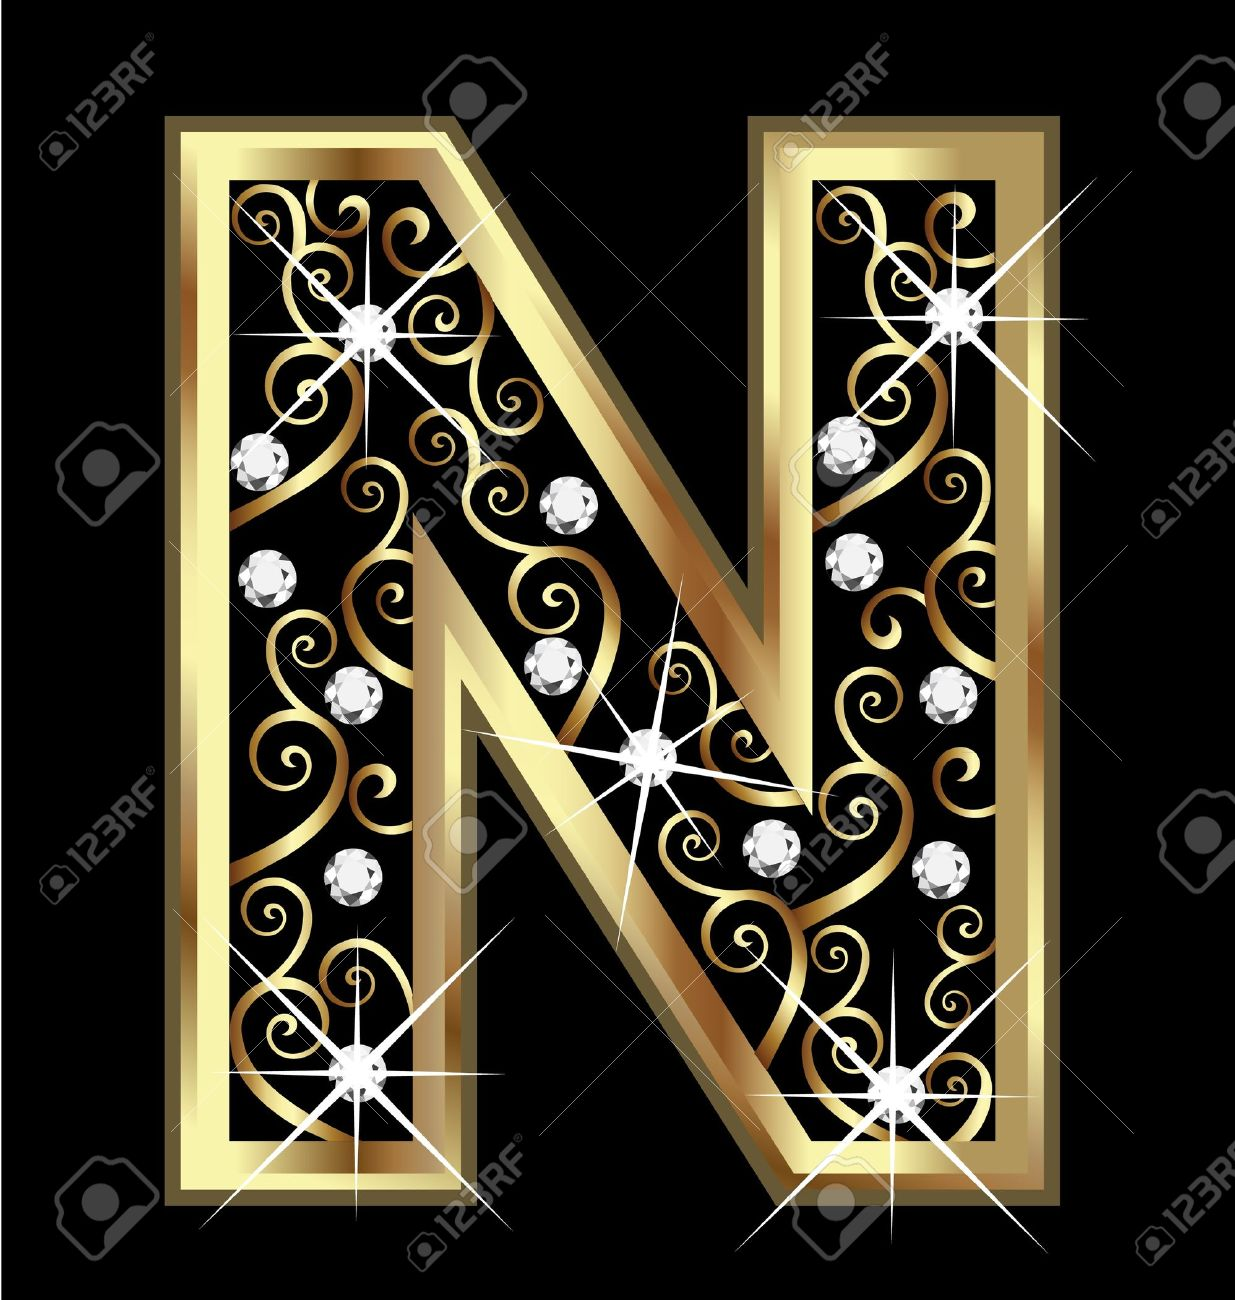 n gold letter with swirly ornaments stock vector - 16320514